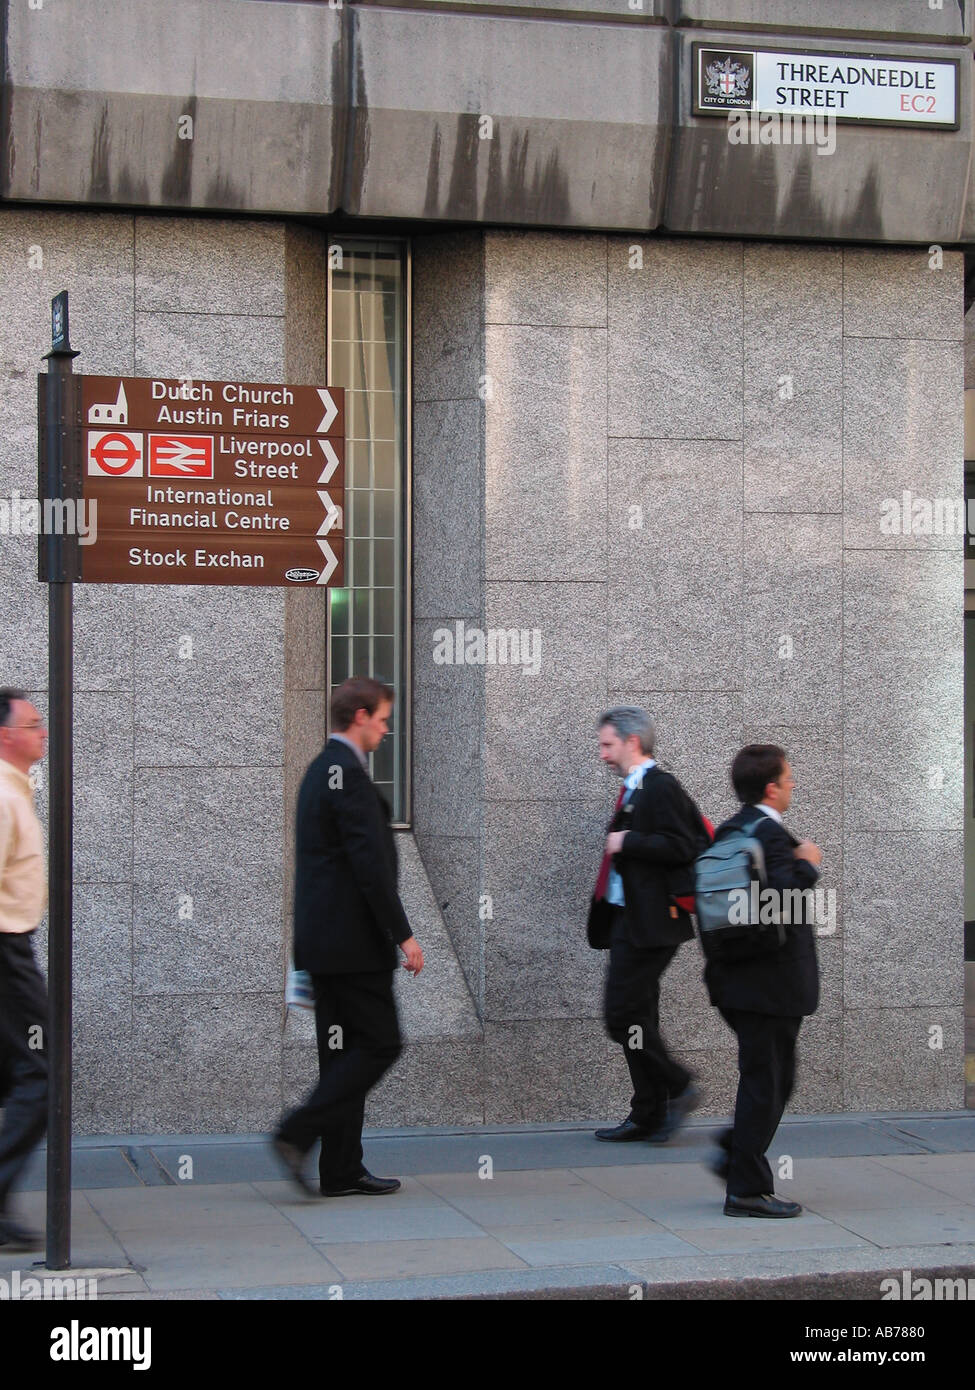 City Workers Banking Area Stock Exchange and Bank of England Area Threadneedle Street EC2 City of London Street Sign London GB - Stock Image